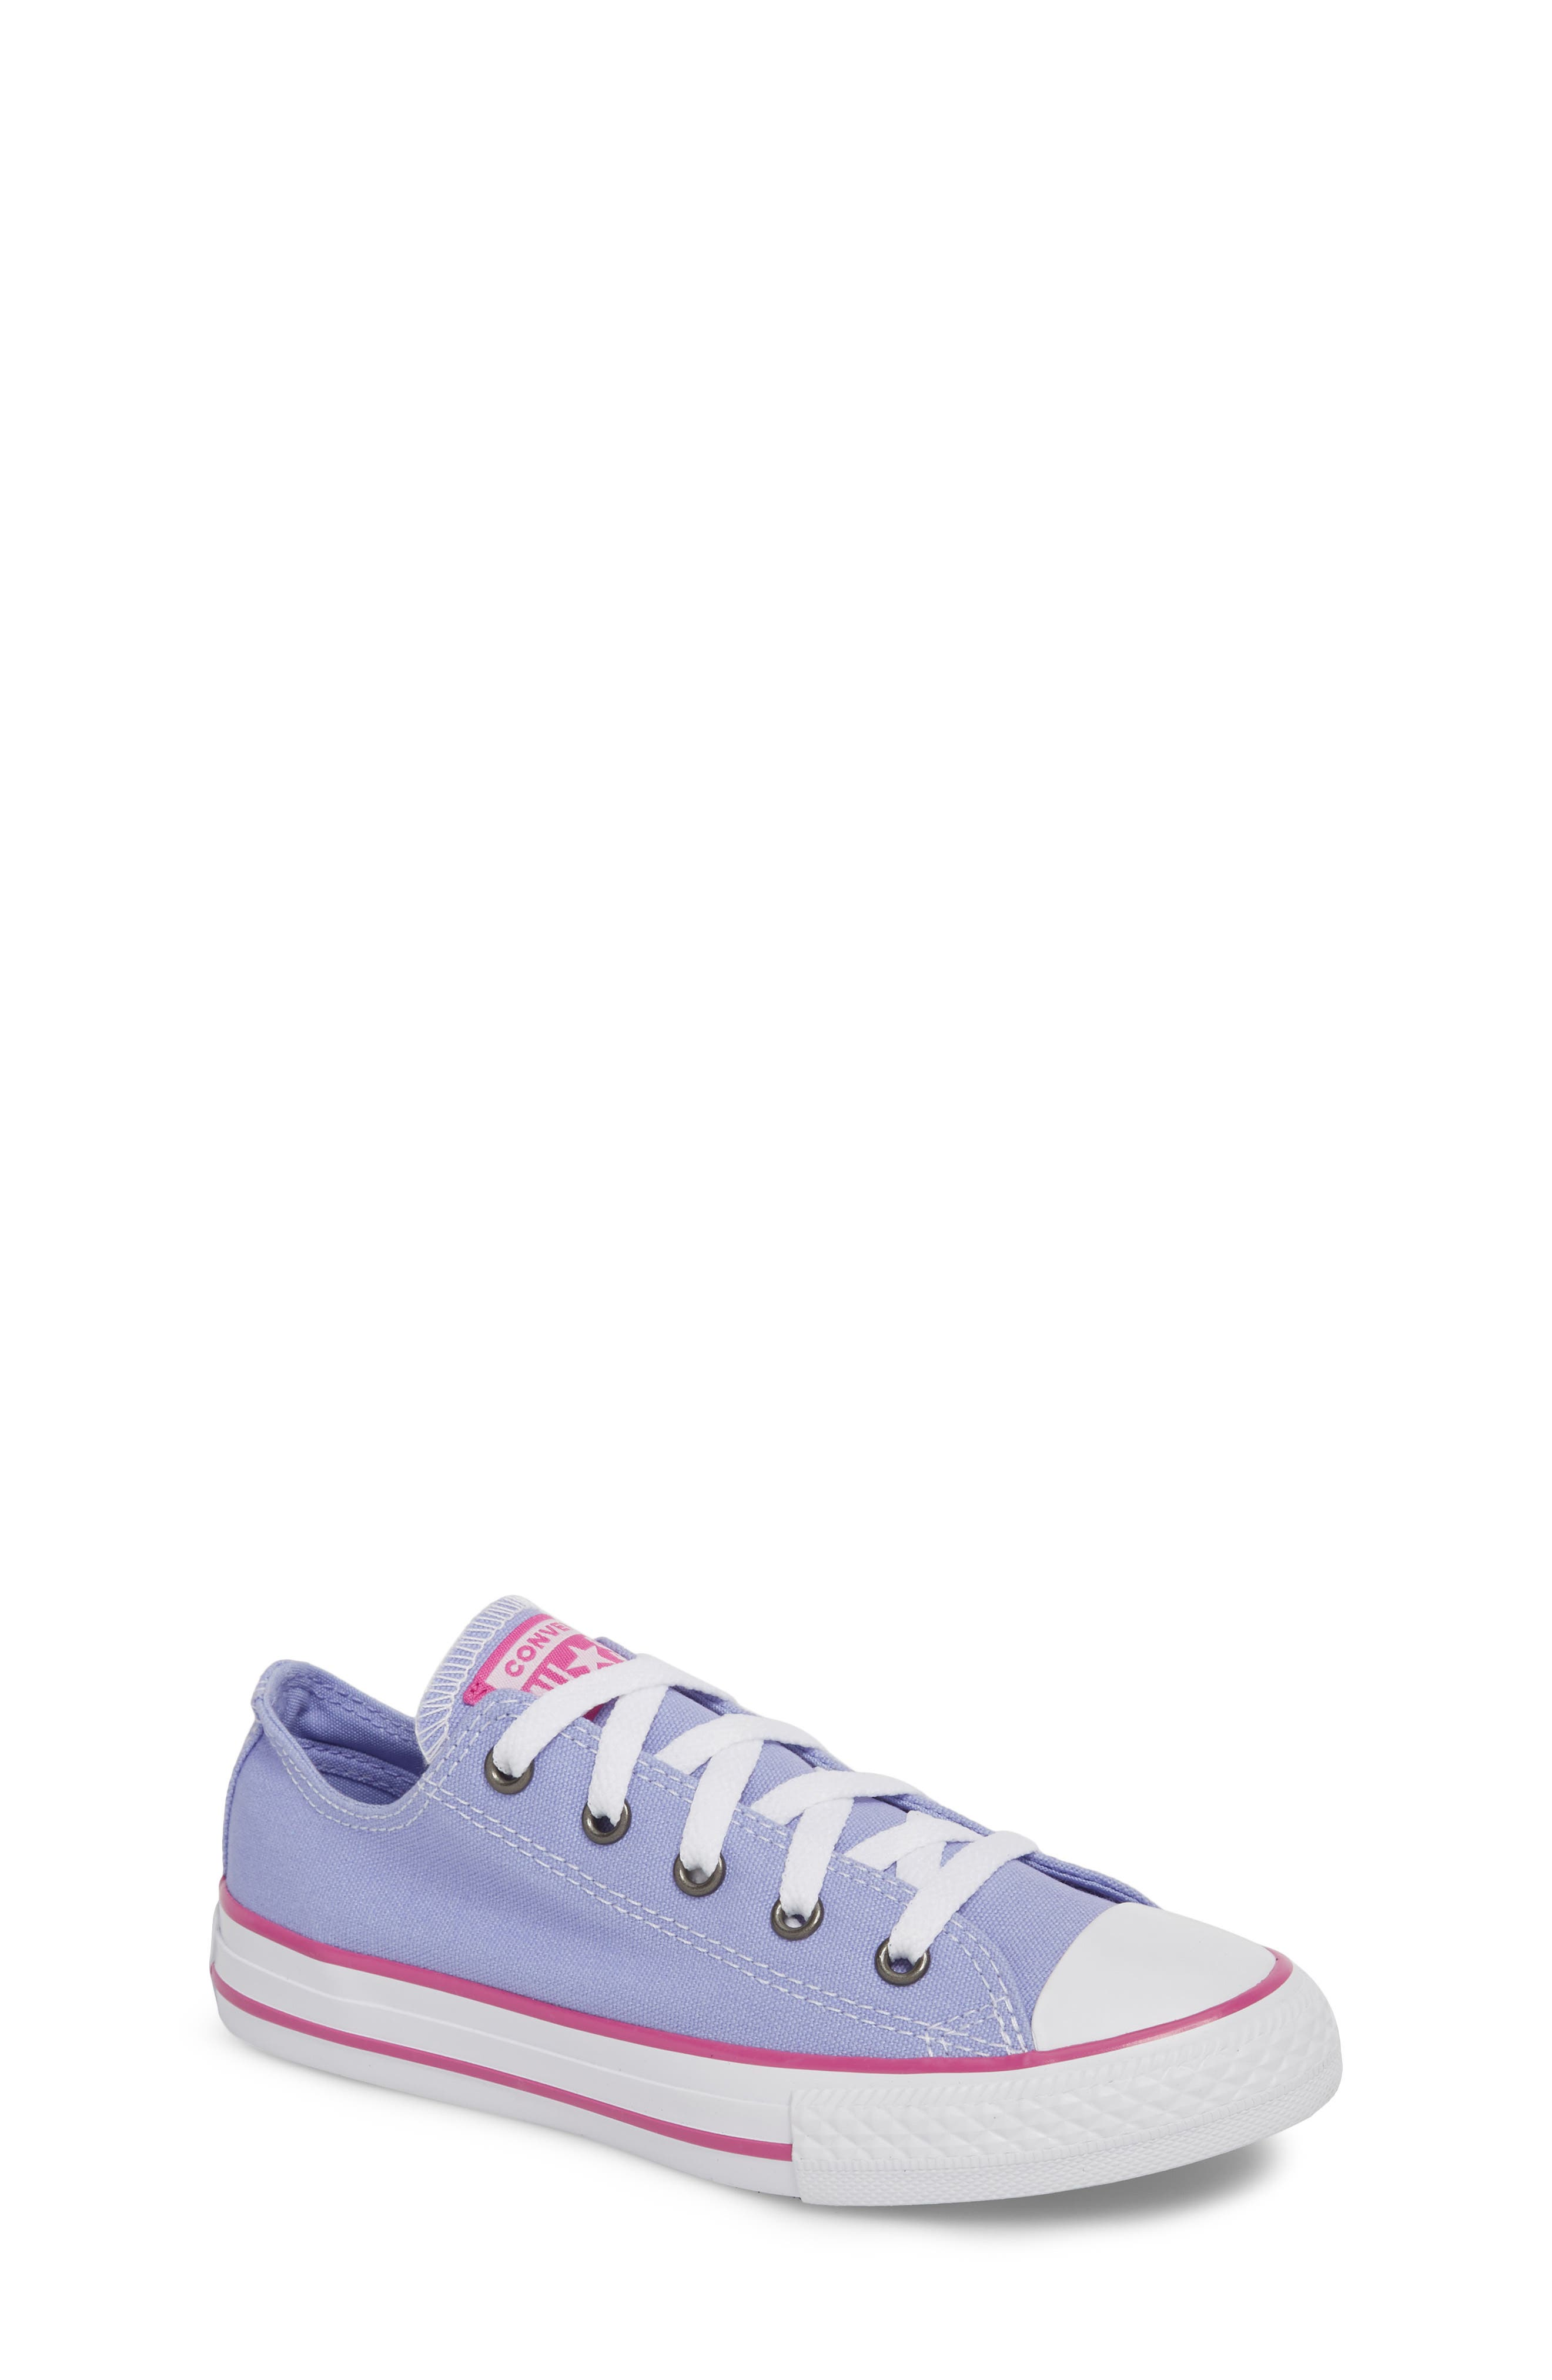 All Star<sup>®</sup> Low Top Sneaker,                         Main,                         color, Twilight Purple